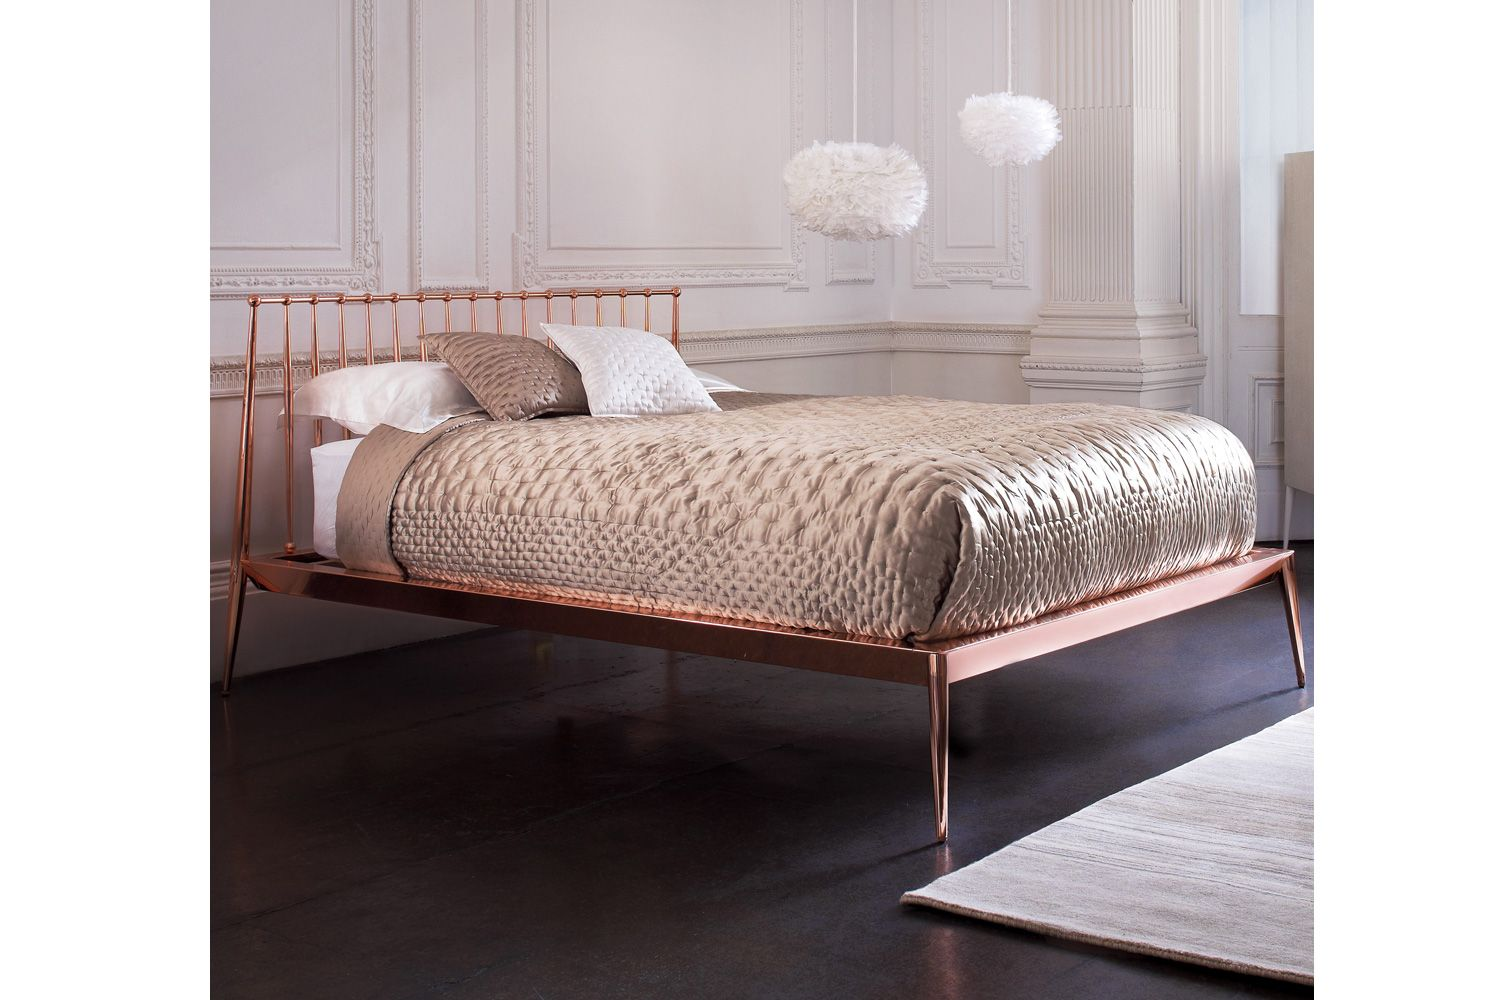 I Love This Bed. Rose Gold...mmmm! Heal's